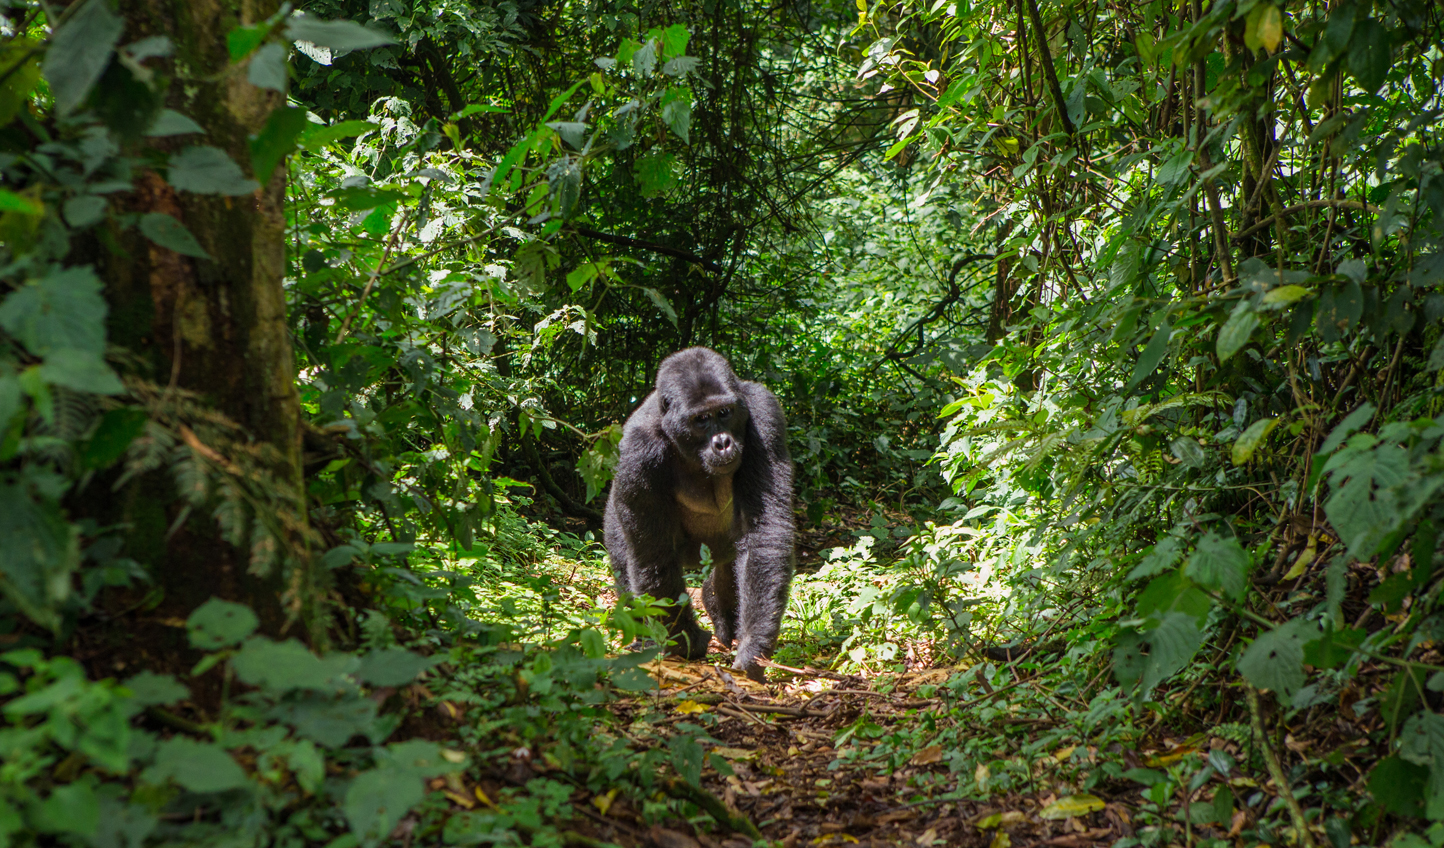 Walk with gorillas through Bwindi Impenetrable Forest